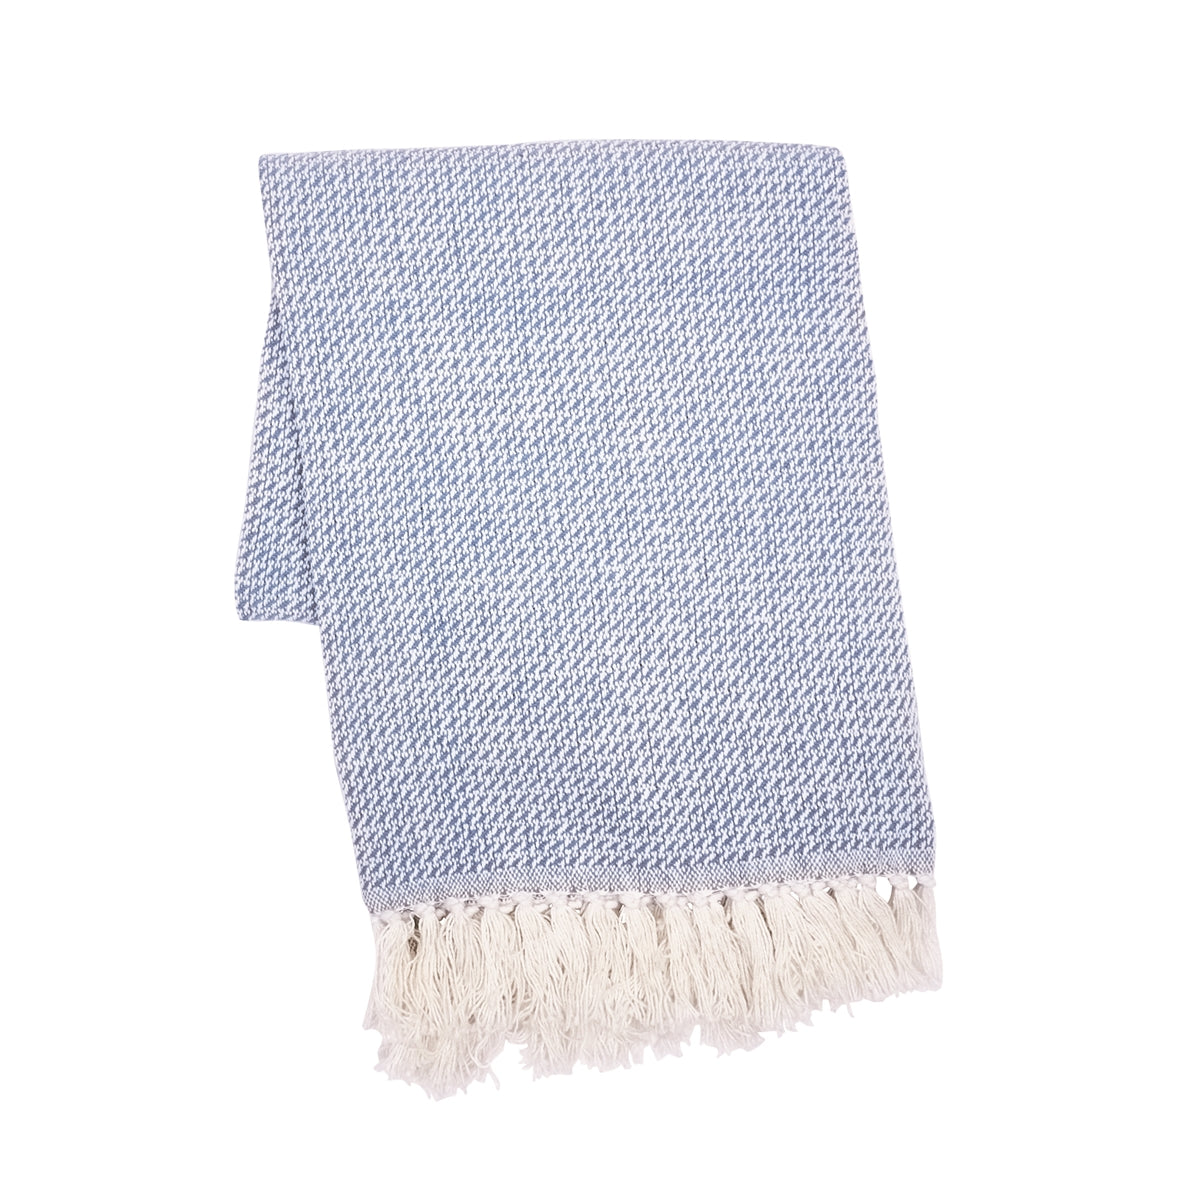 Light Blue/White Throw with Tassels